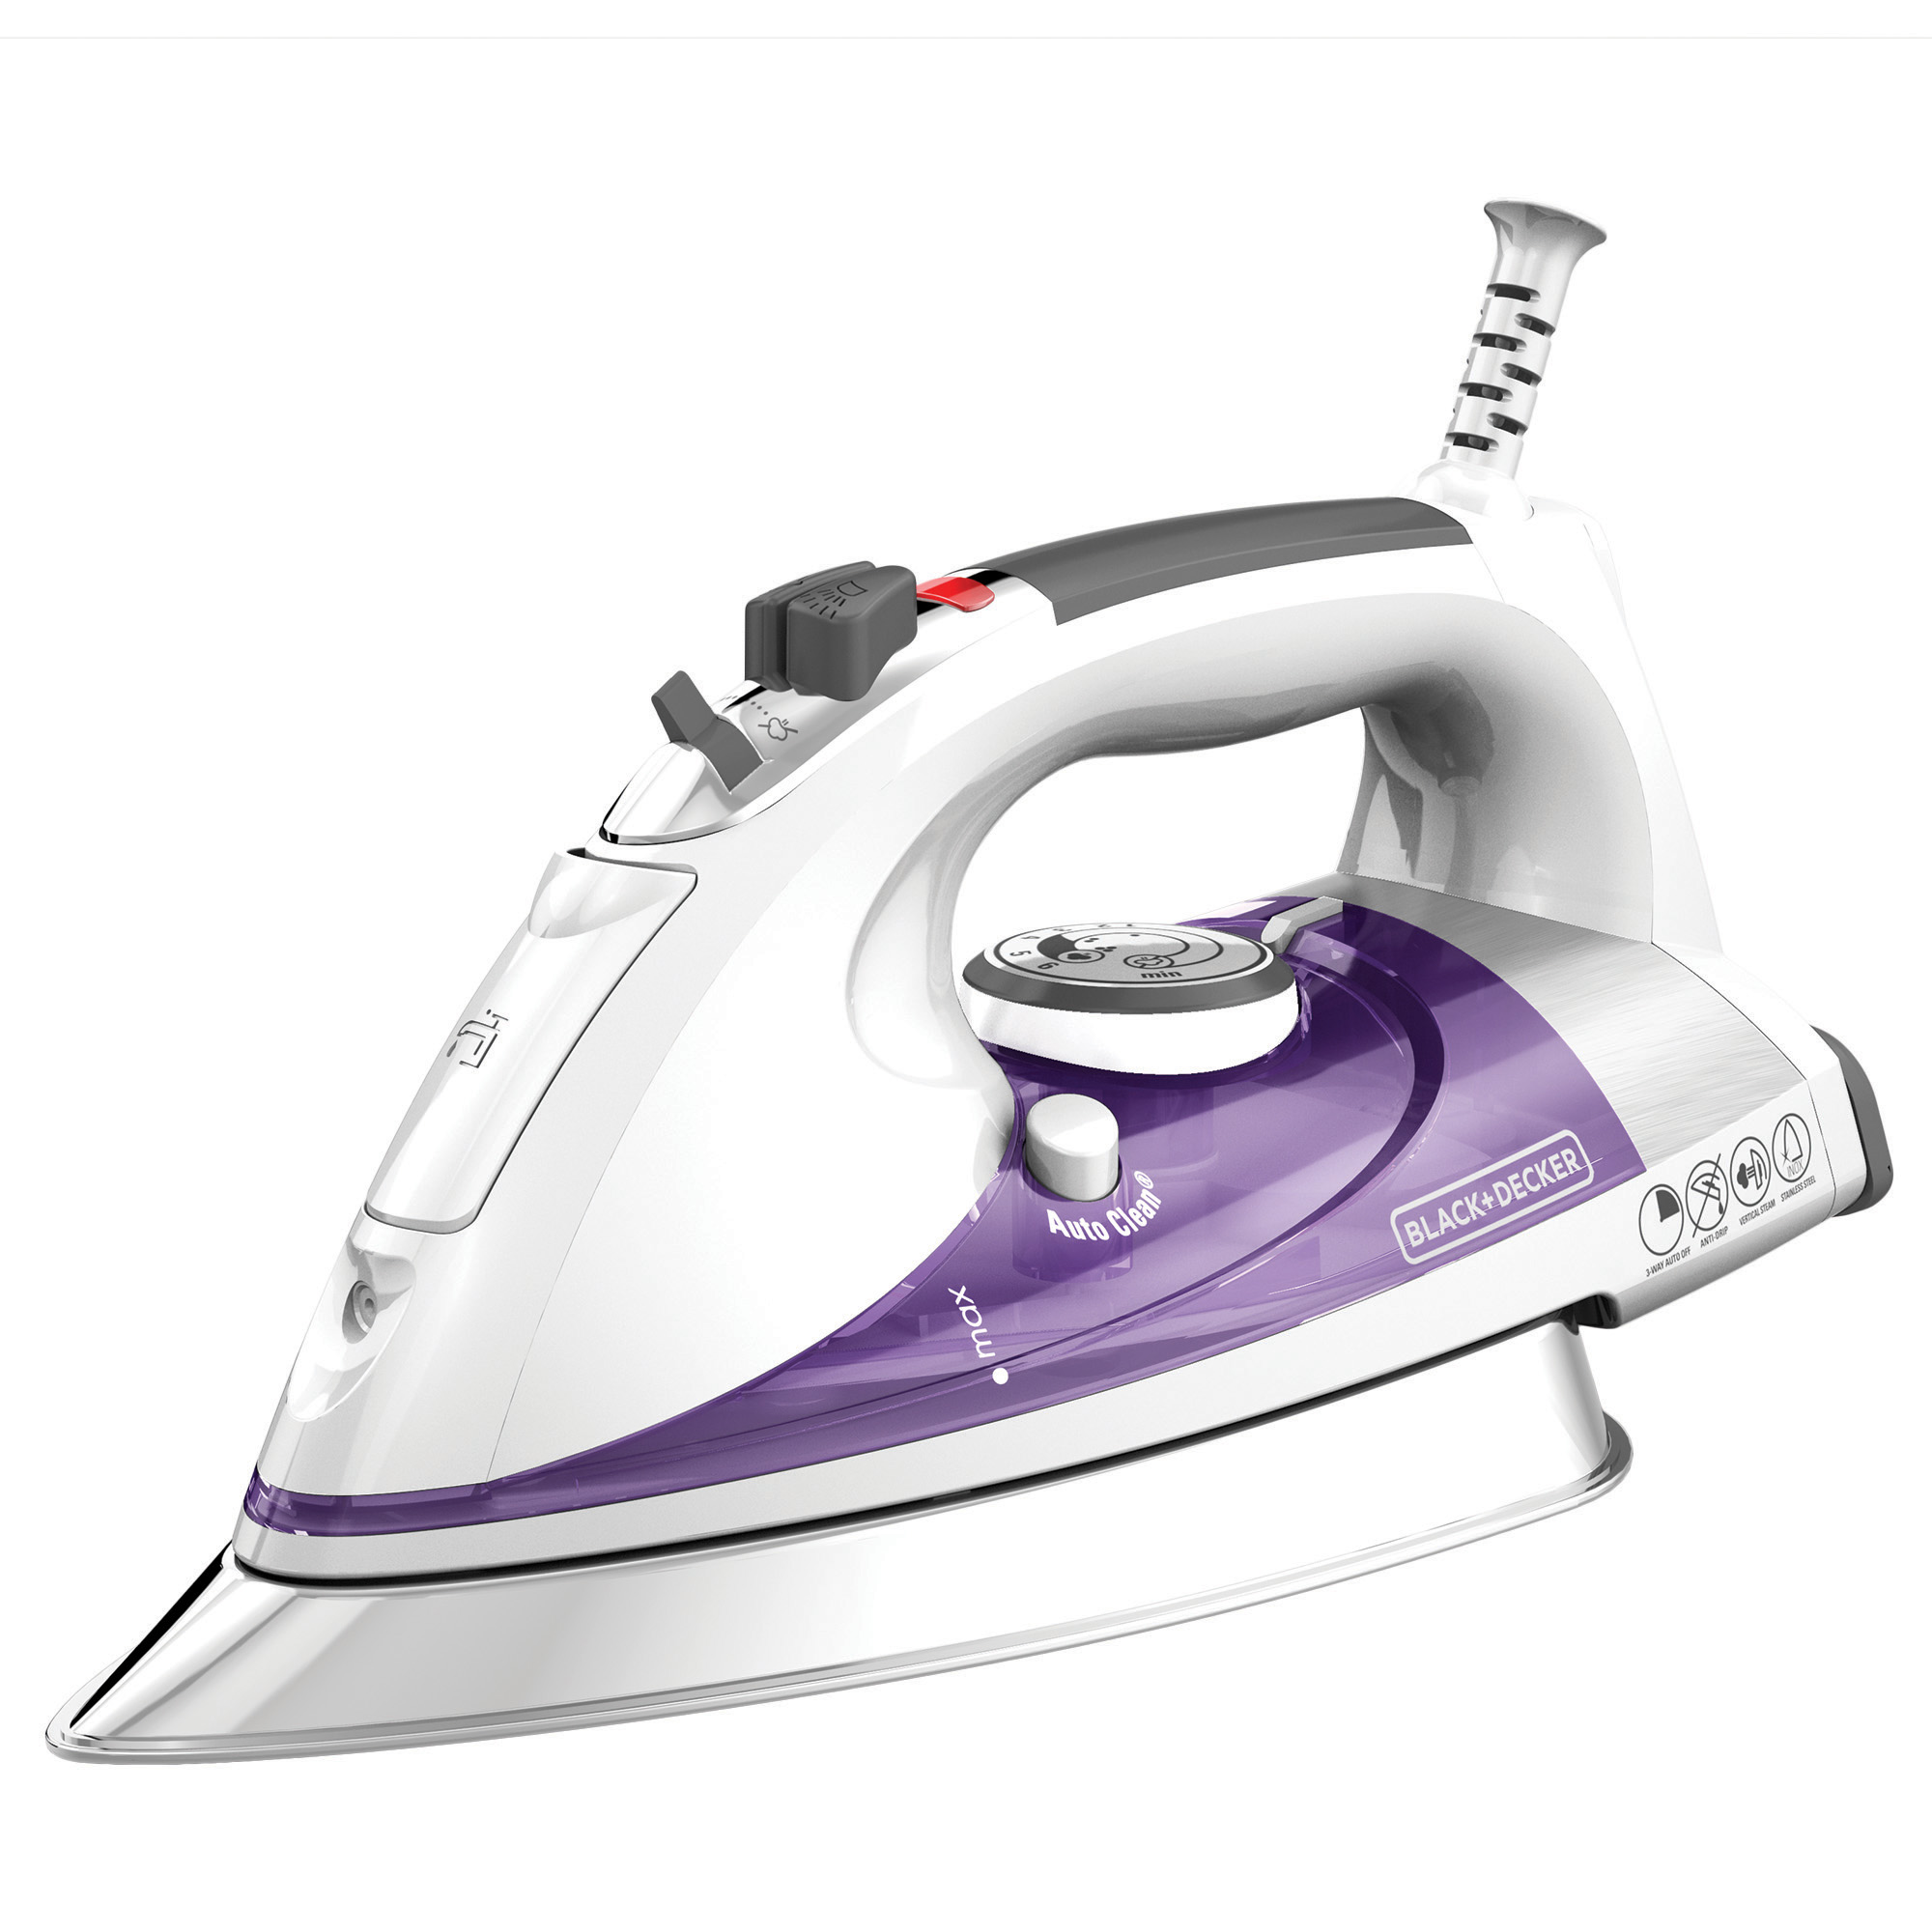 BLACK+DECKER Professional Steam Iron with Stainless Steel Soleplate and Extra-Long Cord, Purple, IR1350S